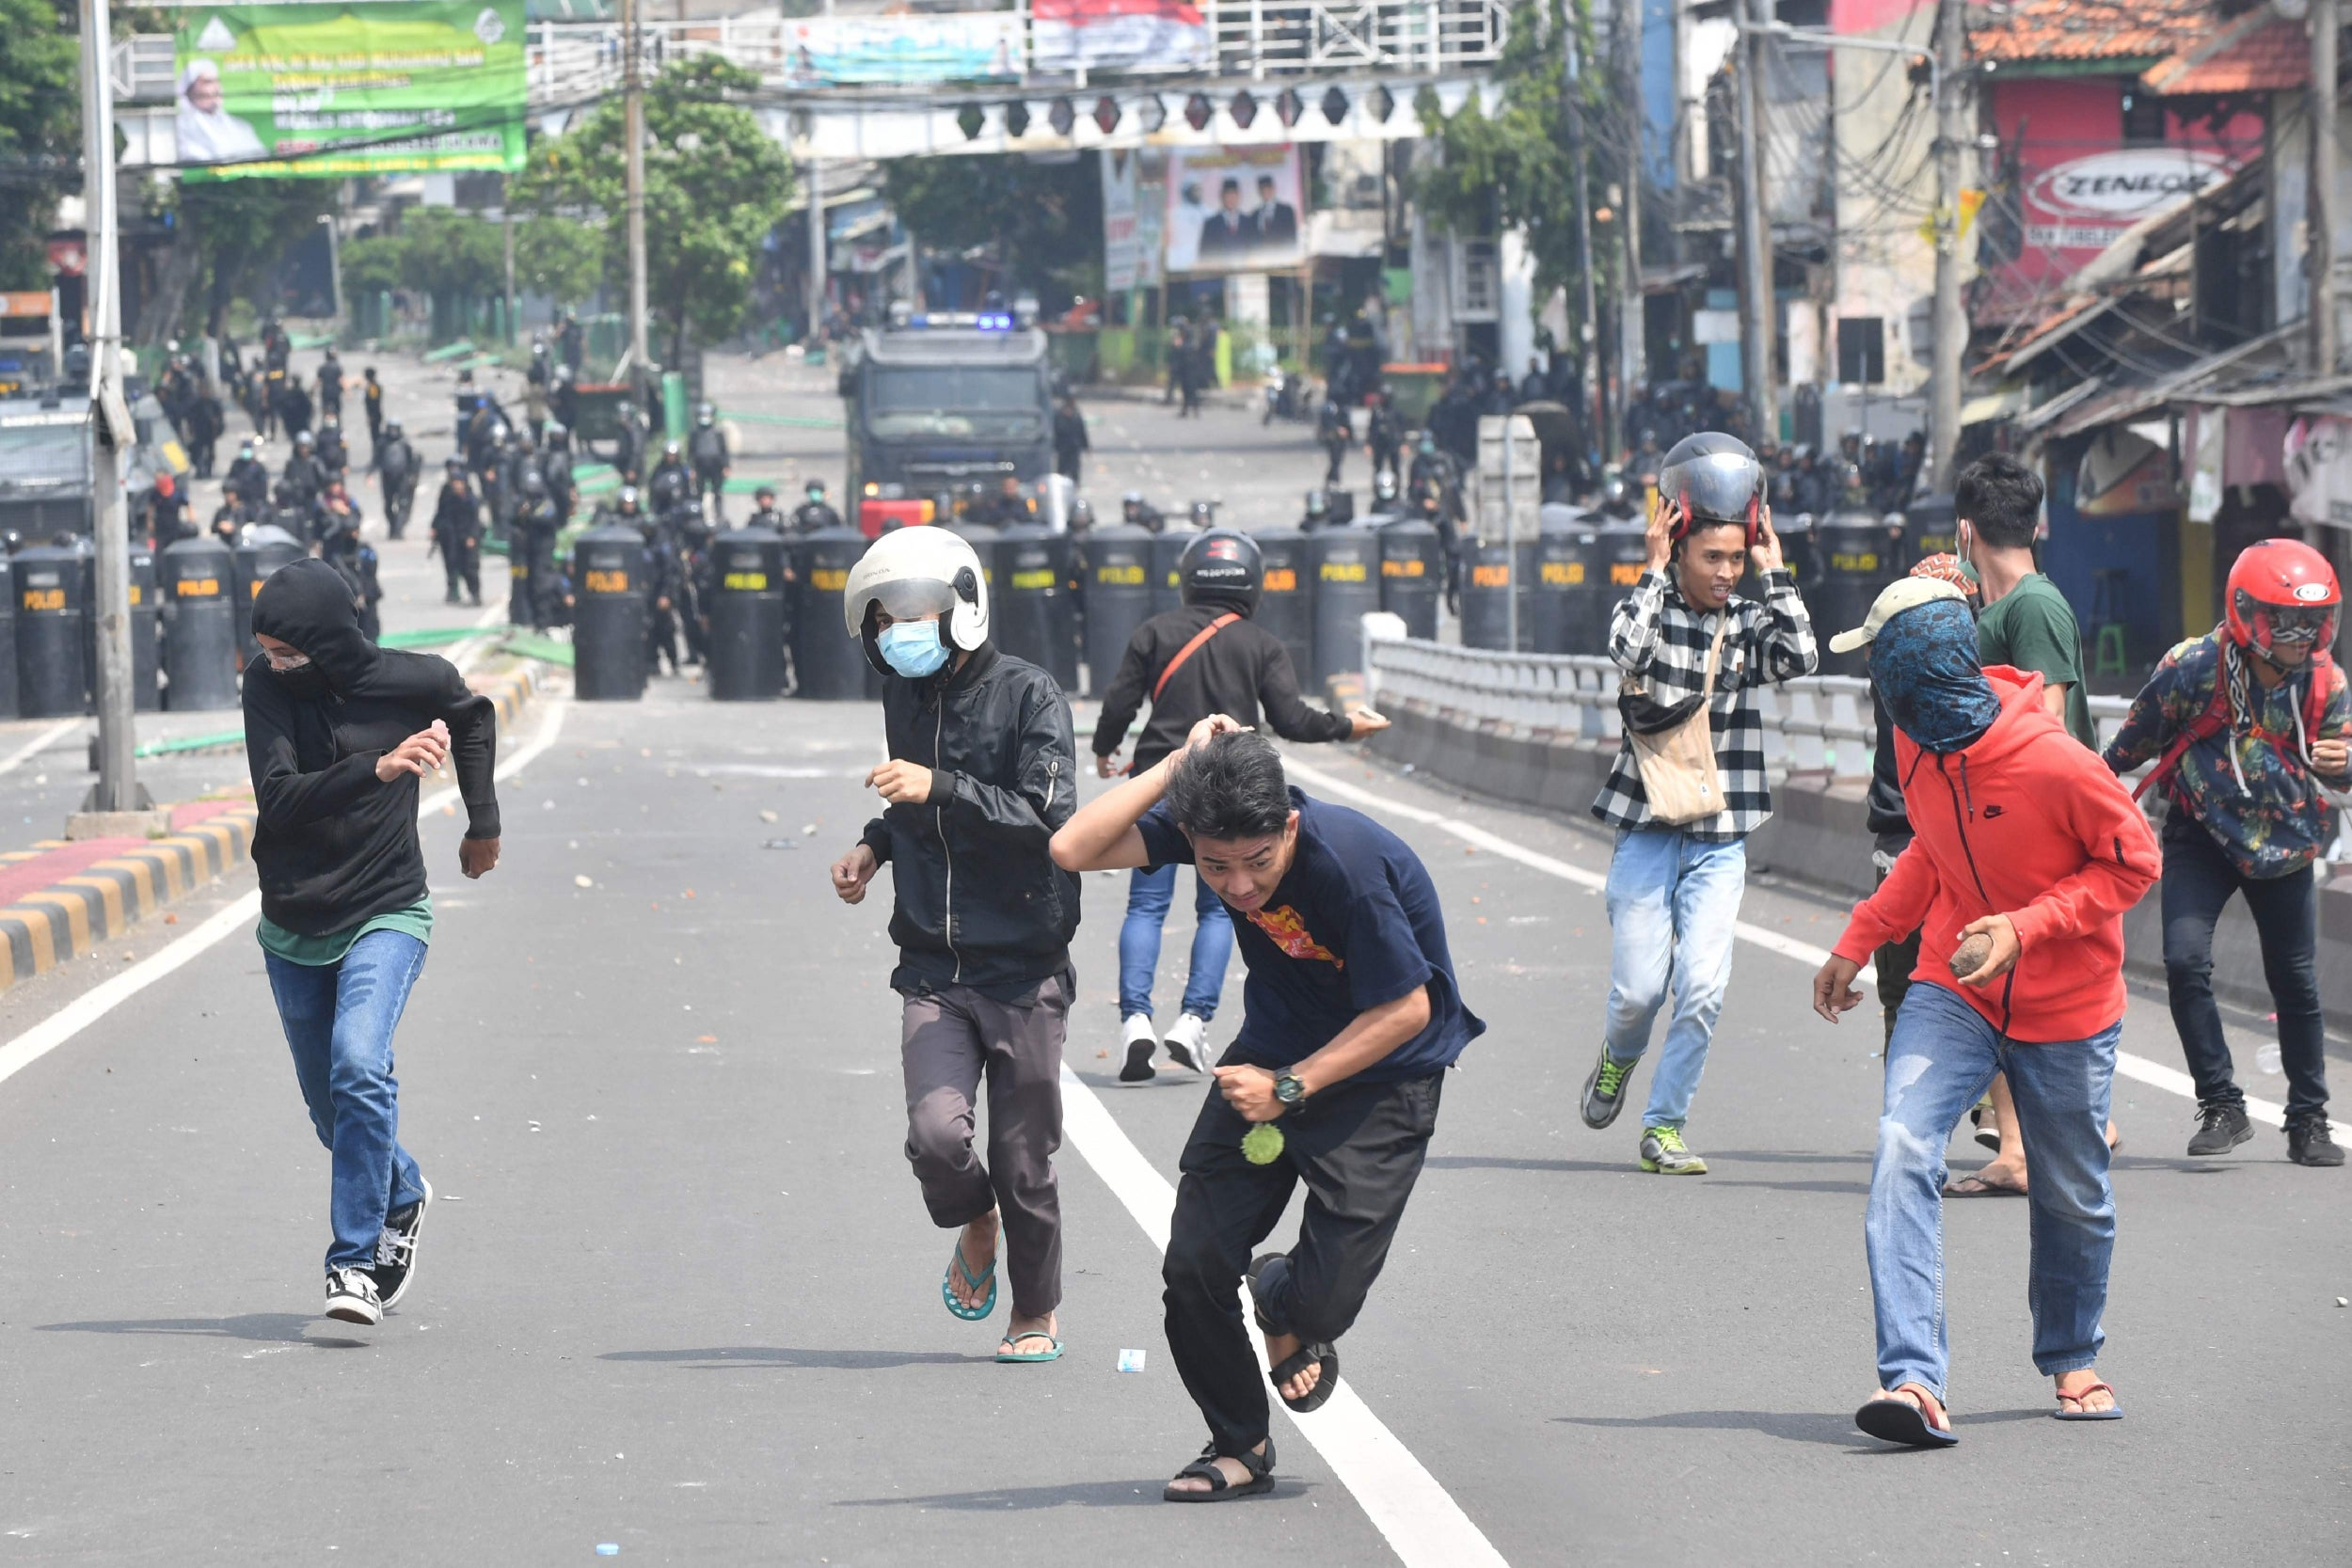 Indonesia travel: Is it safe to visit during riots and political unrest?